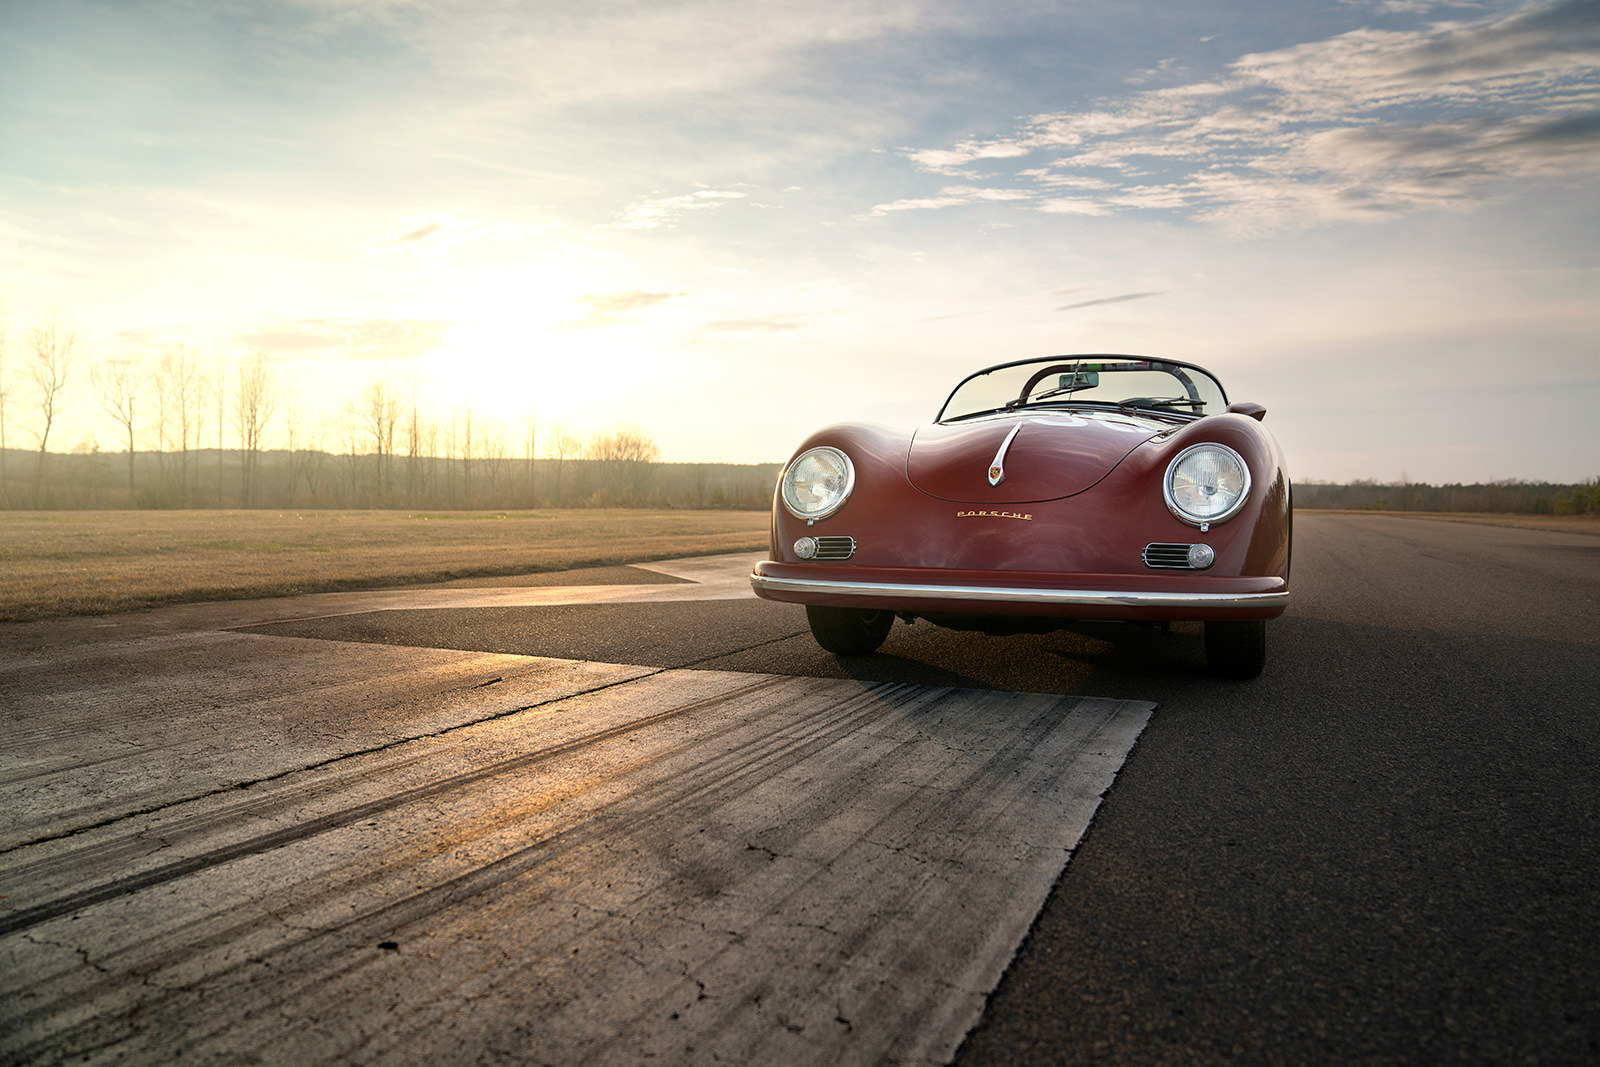 000 Magazine: A Pair of 356 Rubies